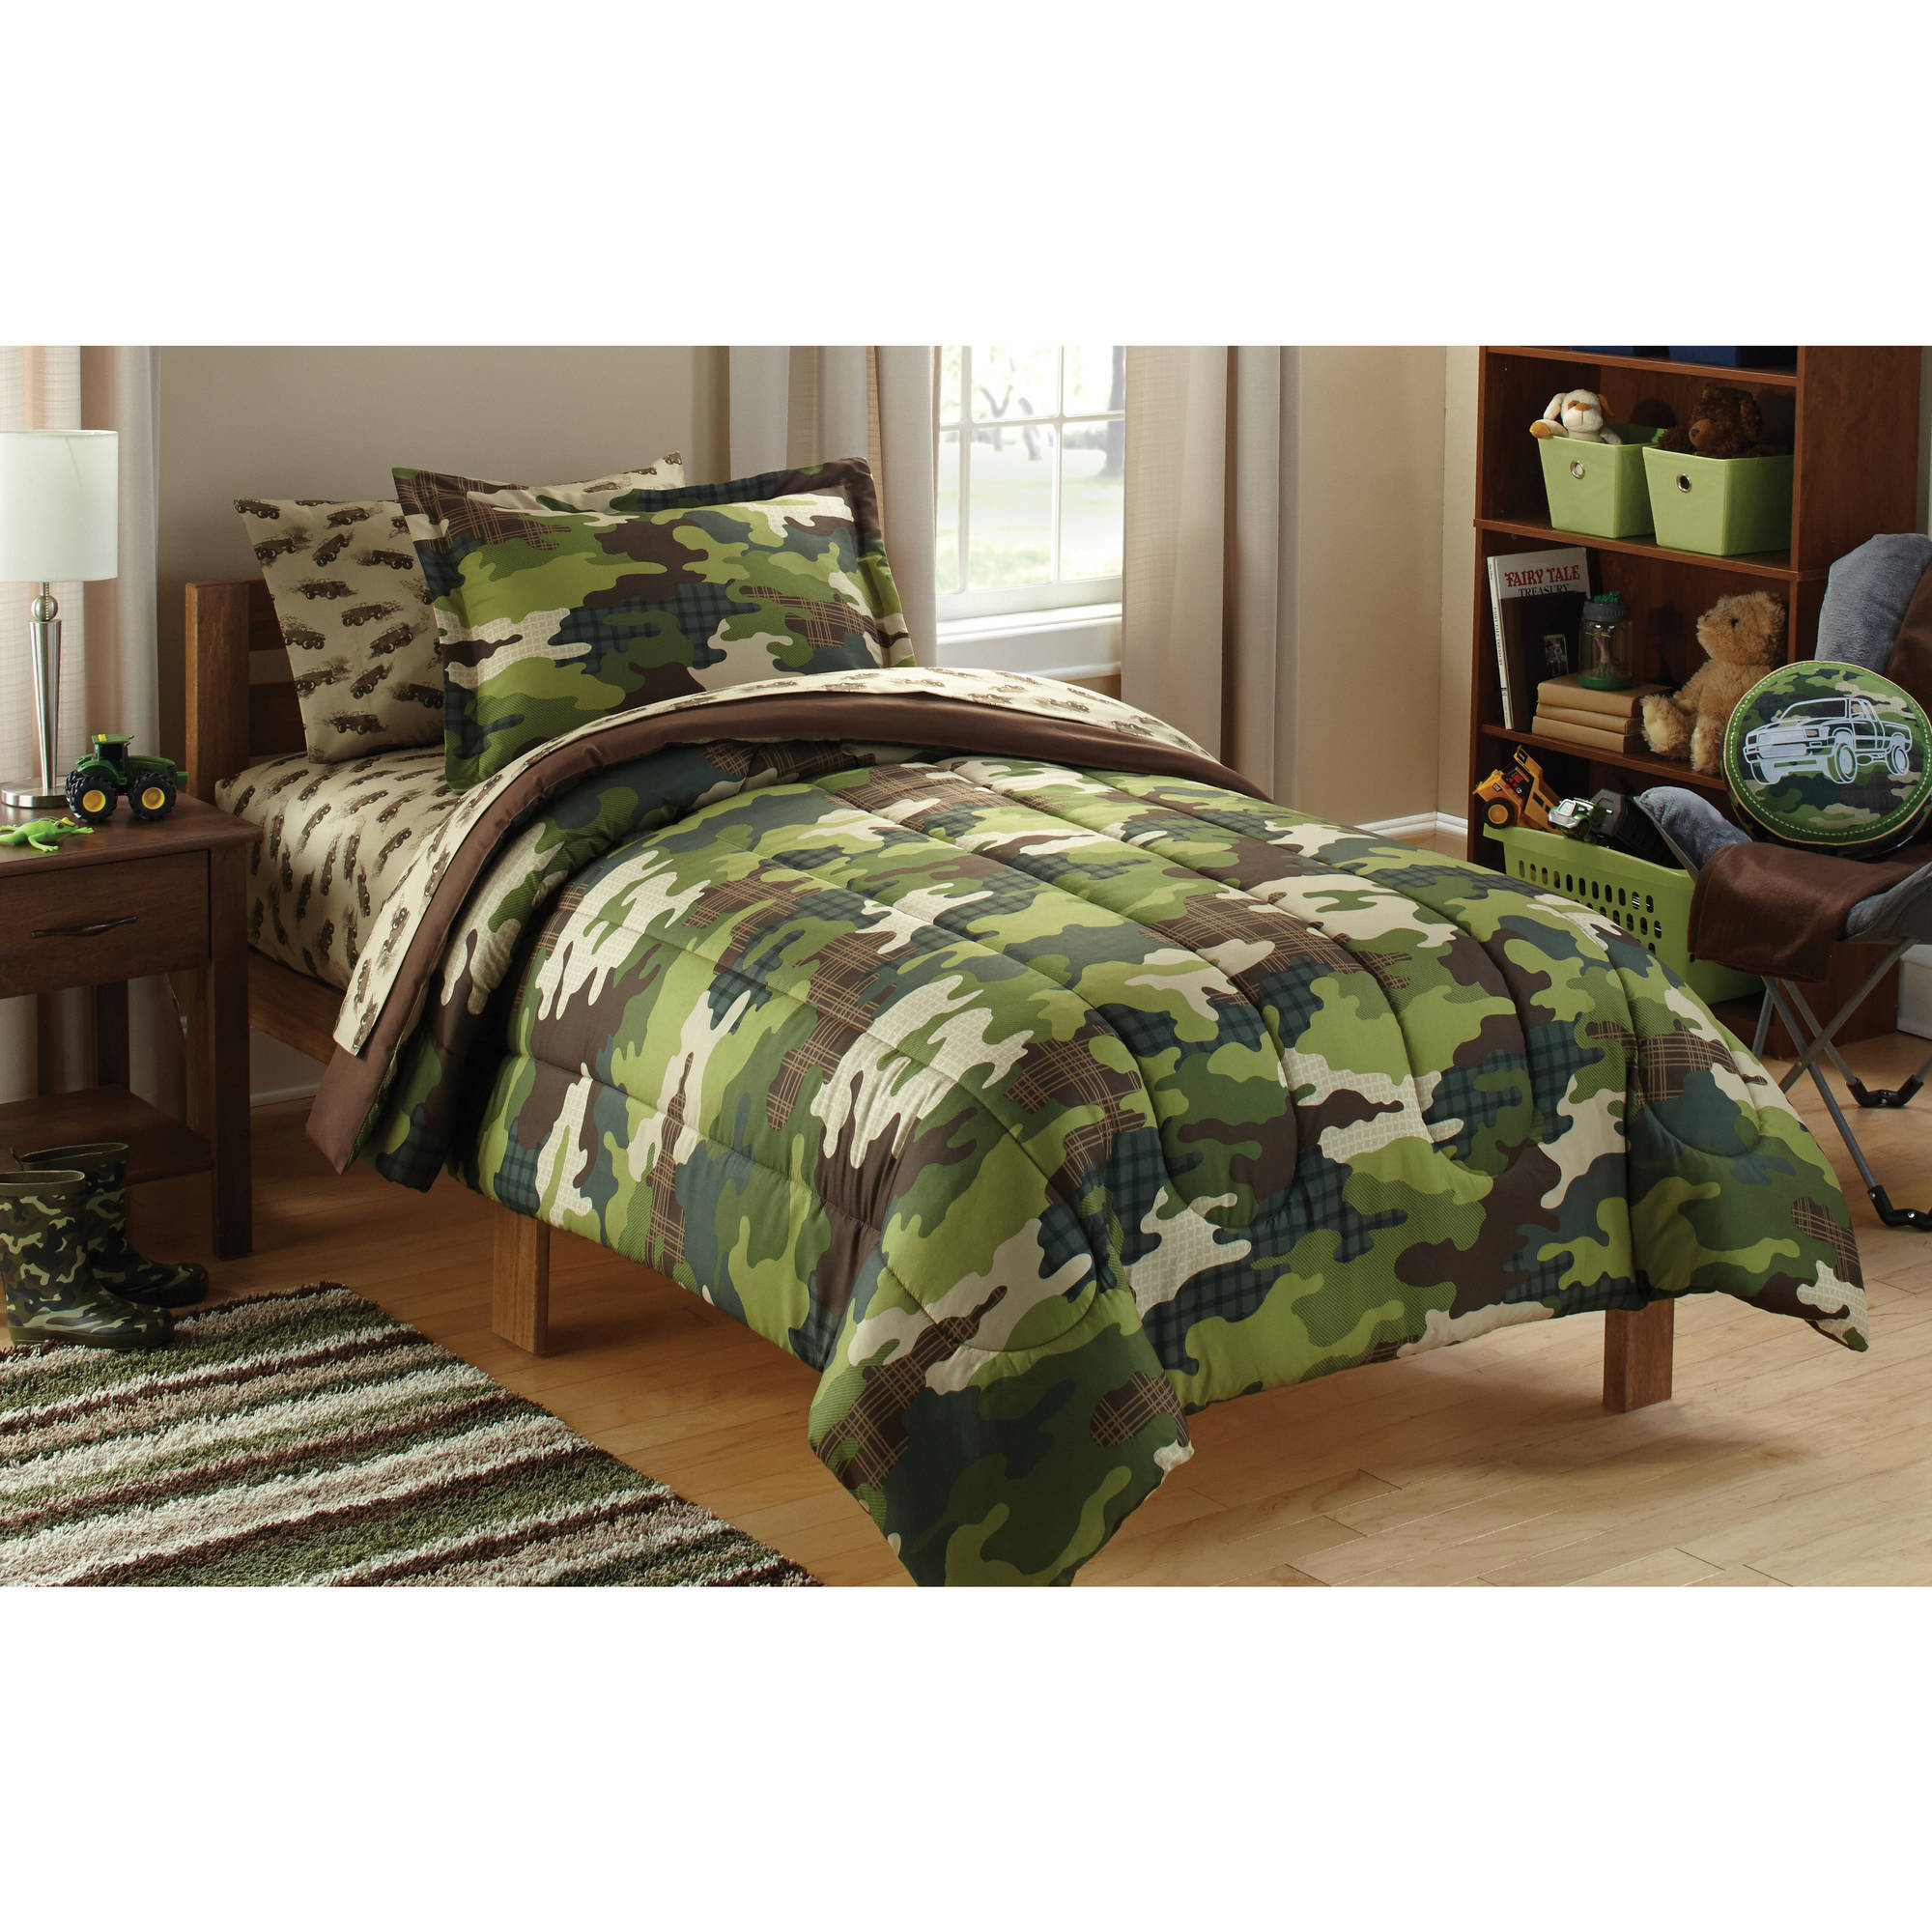 Mainstays Kids' Camoflauge Coordinated Bed in a Bag